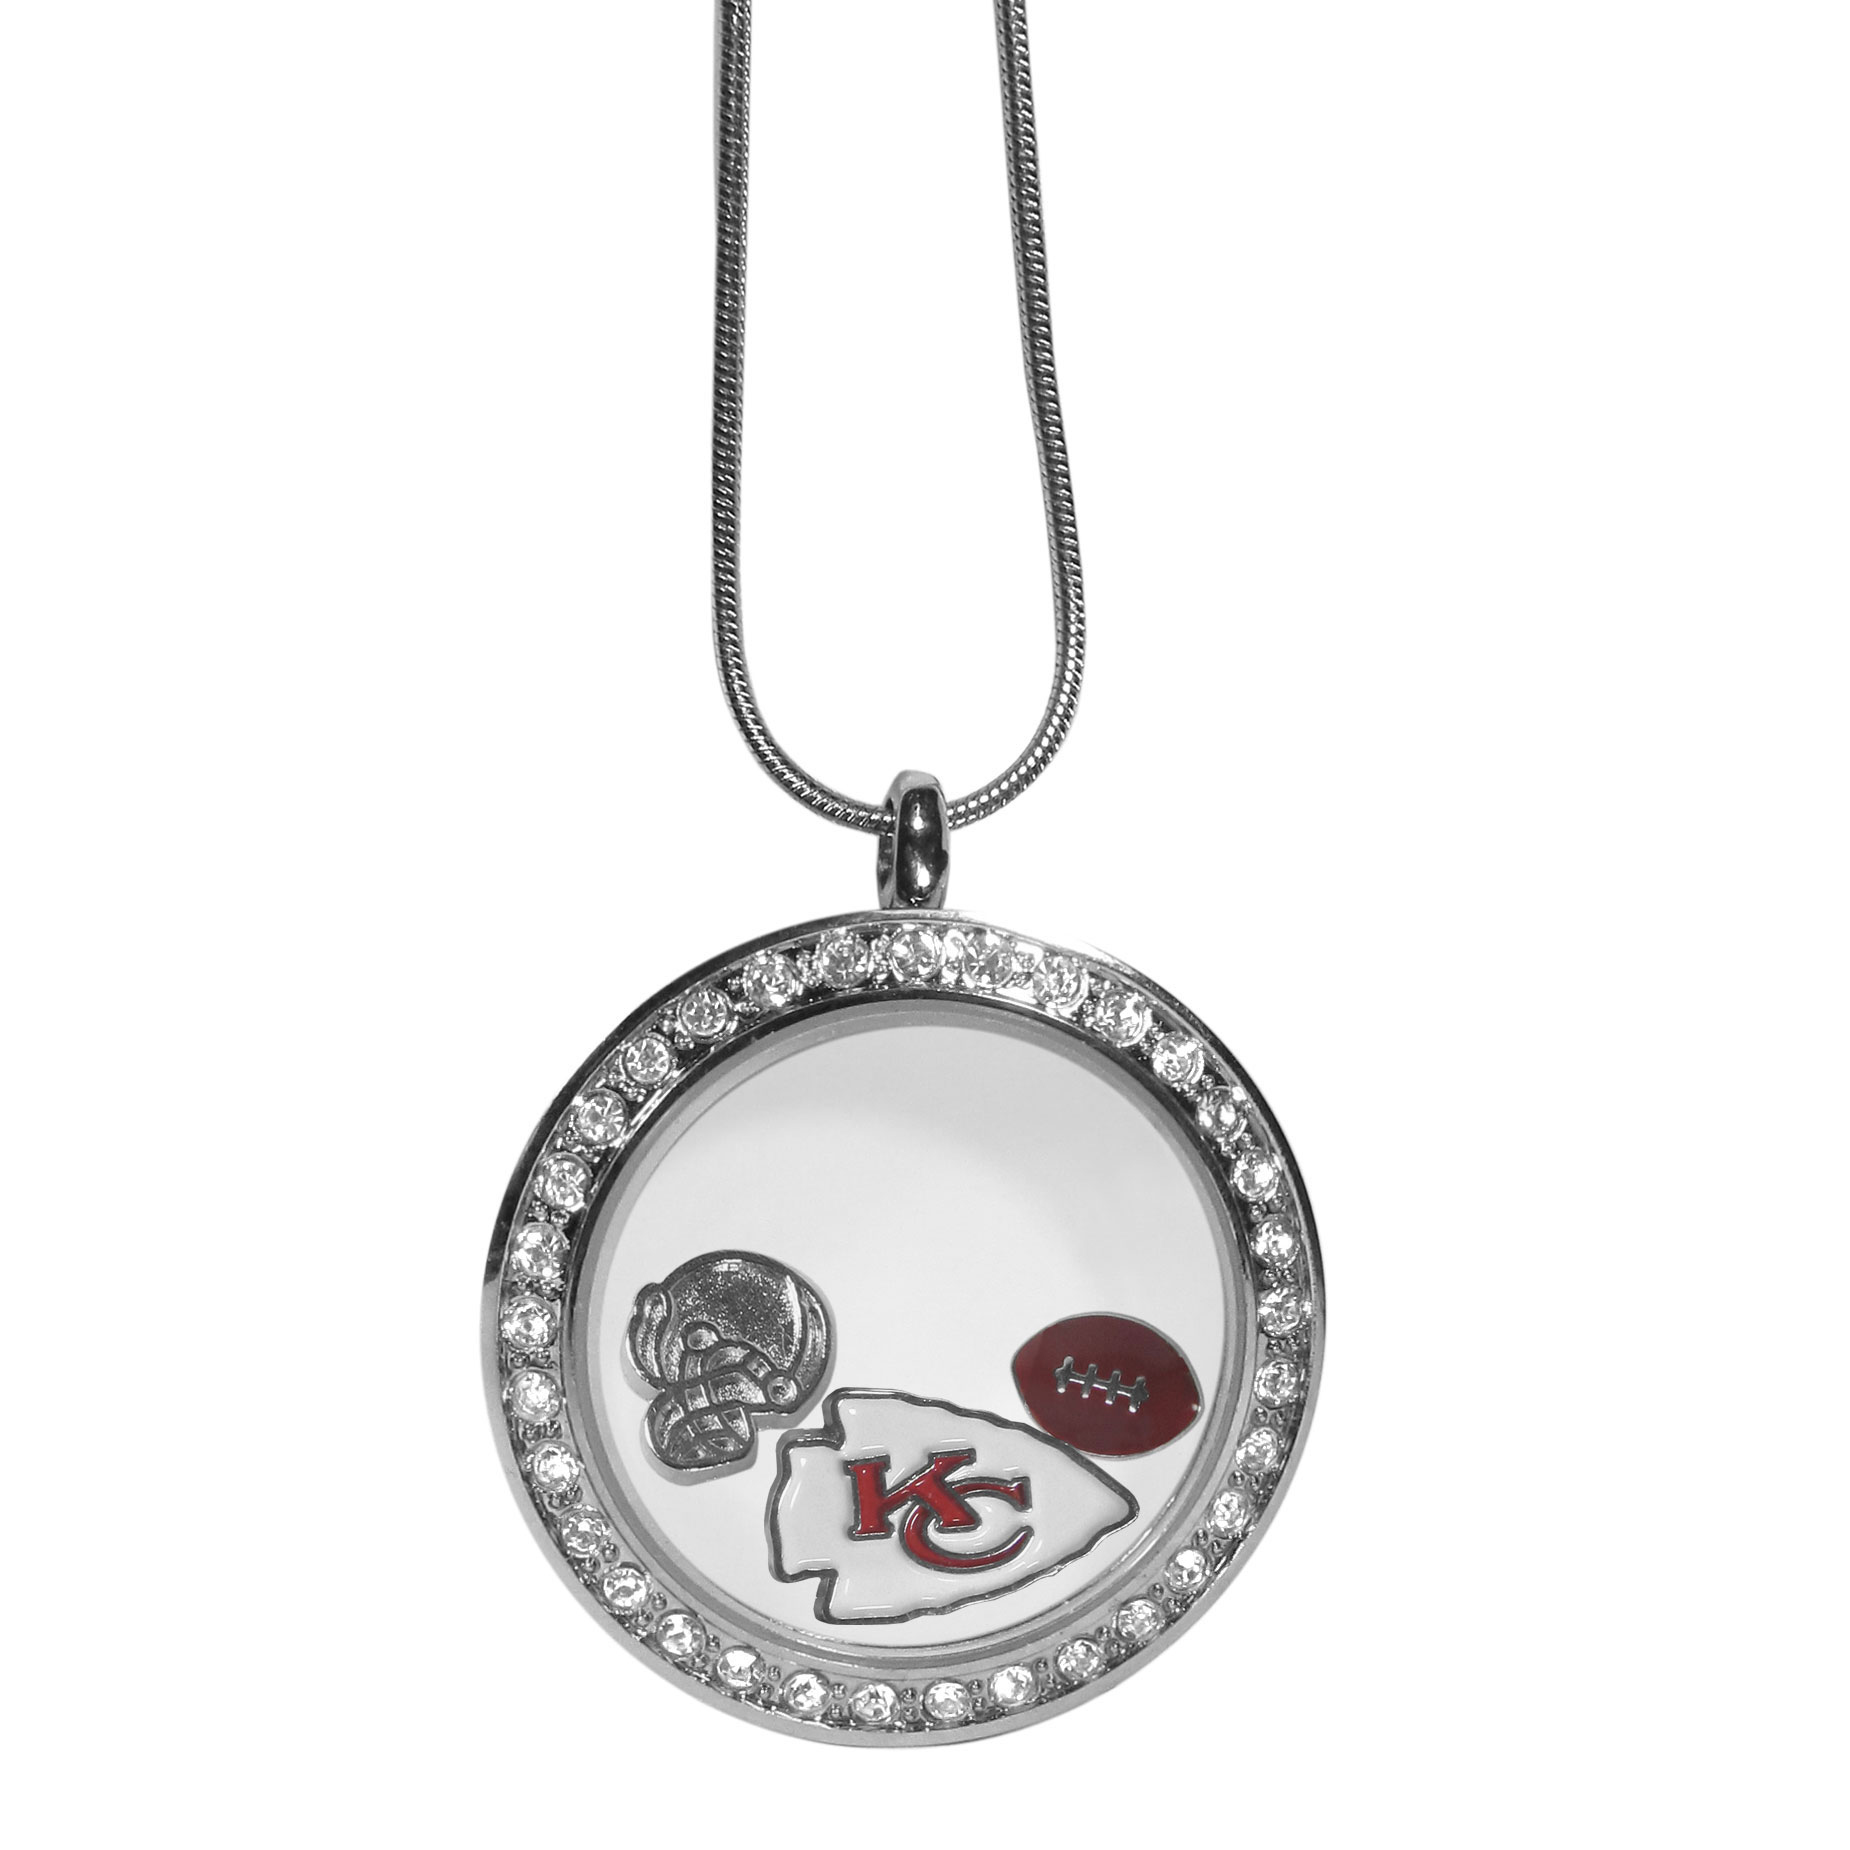 Kansas City Chiefs Locket Necklace - We have taken the classic floating charm locket and combined with licensed sports charms to create a must have fan necklace. The necklace comes with 3 charms; 1 Kansas City Chiefs charm, one football charm and one helmet charm. The charms float in a beautiful locket that has a strong magnetic closure with a rhinestone border. The locket comes on an 18 inch snake chain with 2 inch extender.